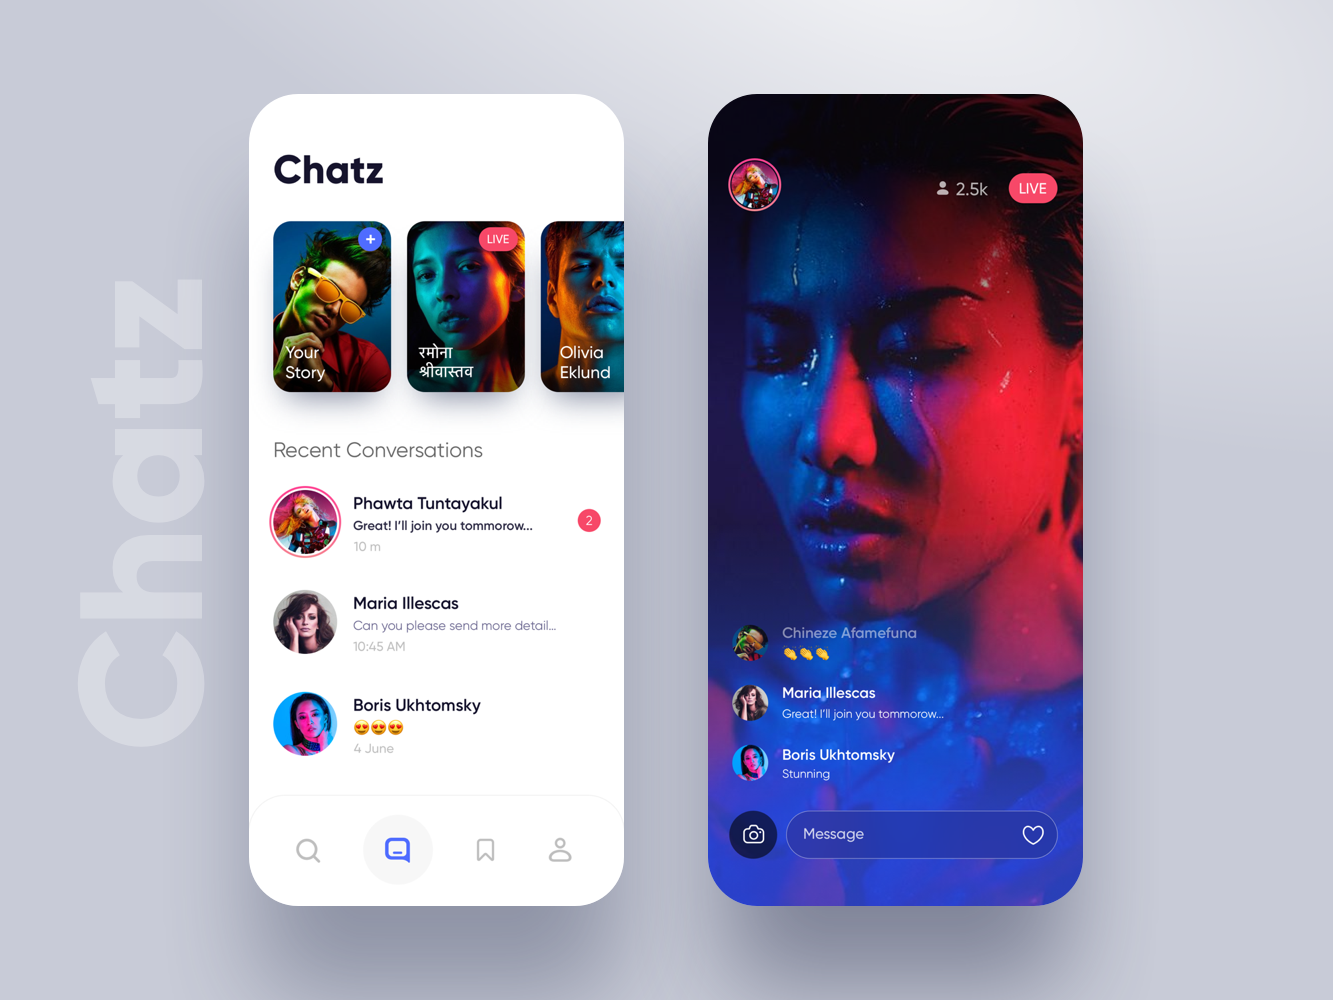 Chatz app UI message app chat app message story minimal app ux ui ios iphone chat